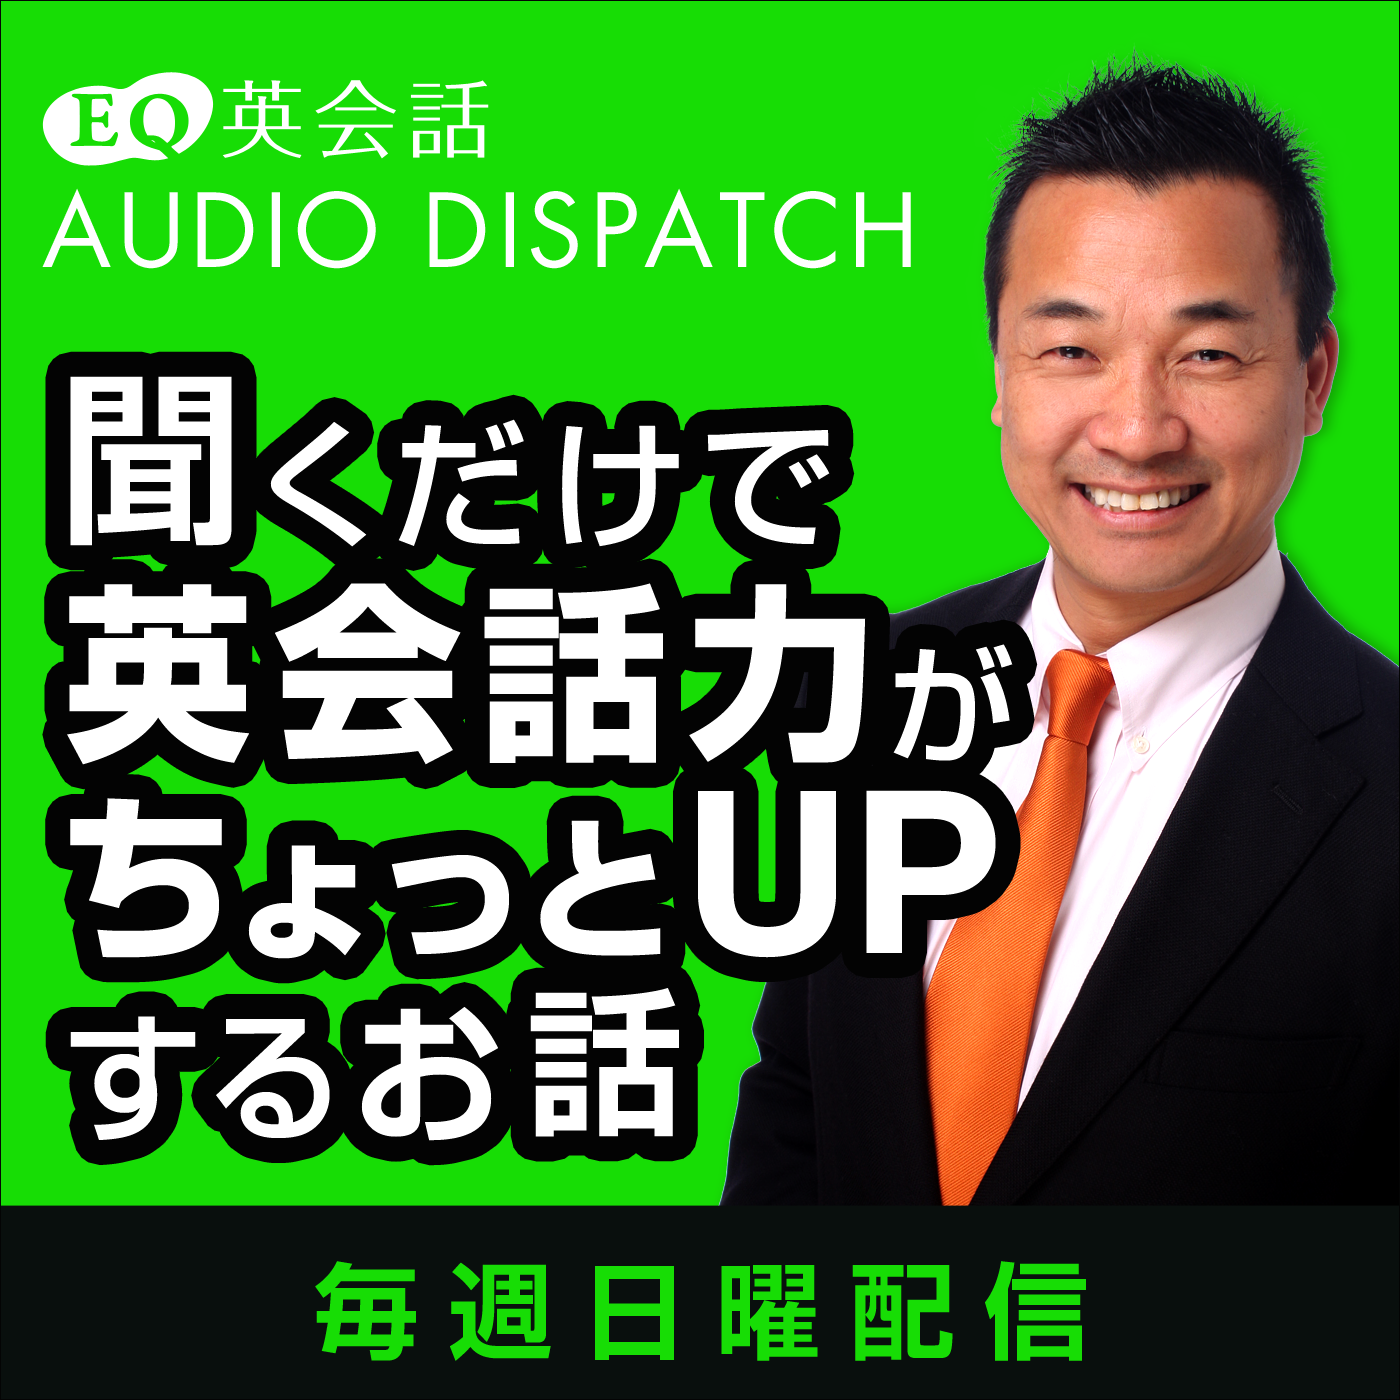 EQ英会話 Radio 〜Audio Dispatch〜